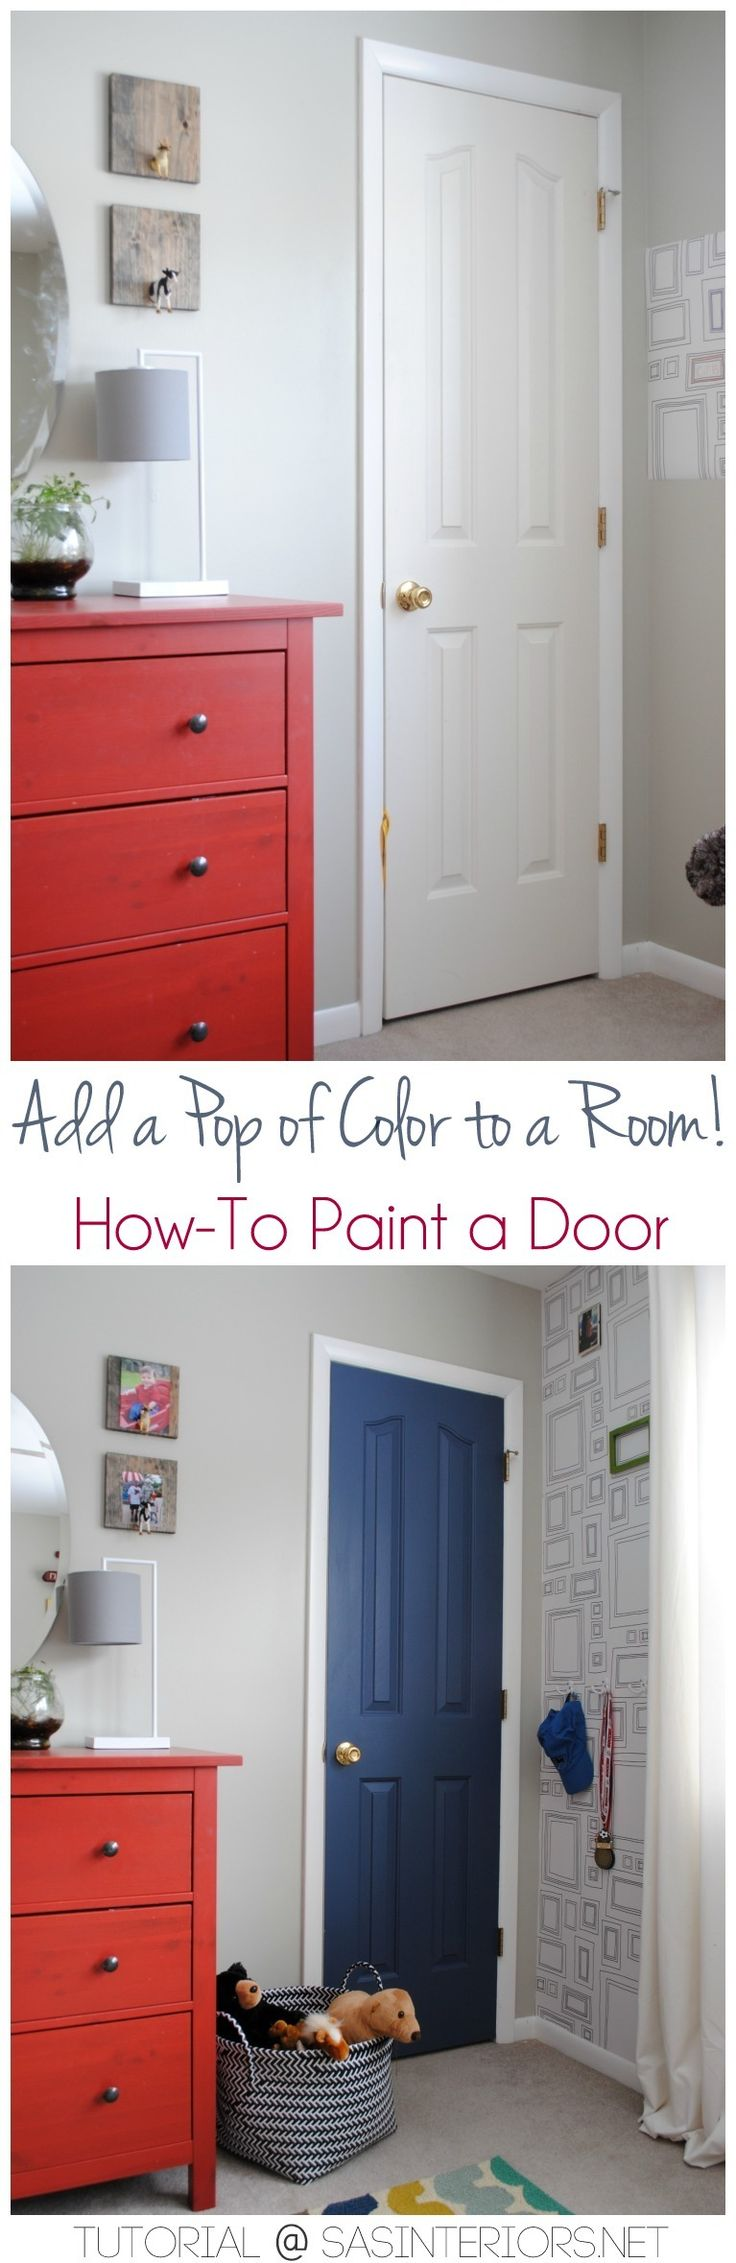 best paint projects images on pinterest my house decorative